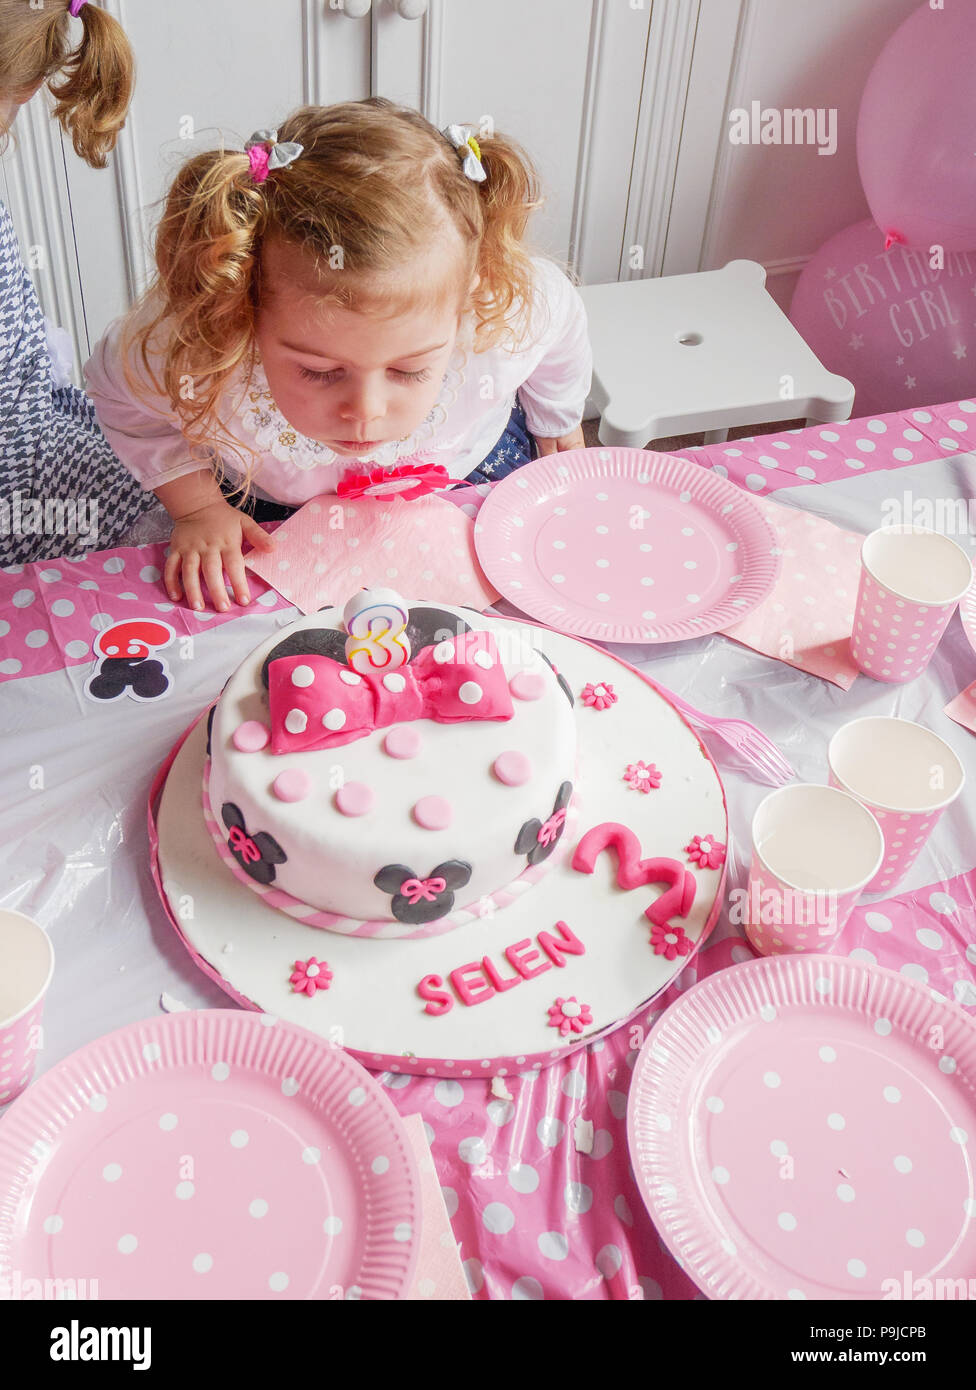 Three Year Old Girl Blowing Out Candles On Her Birthday Cake UK